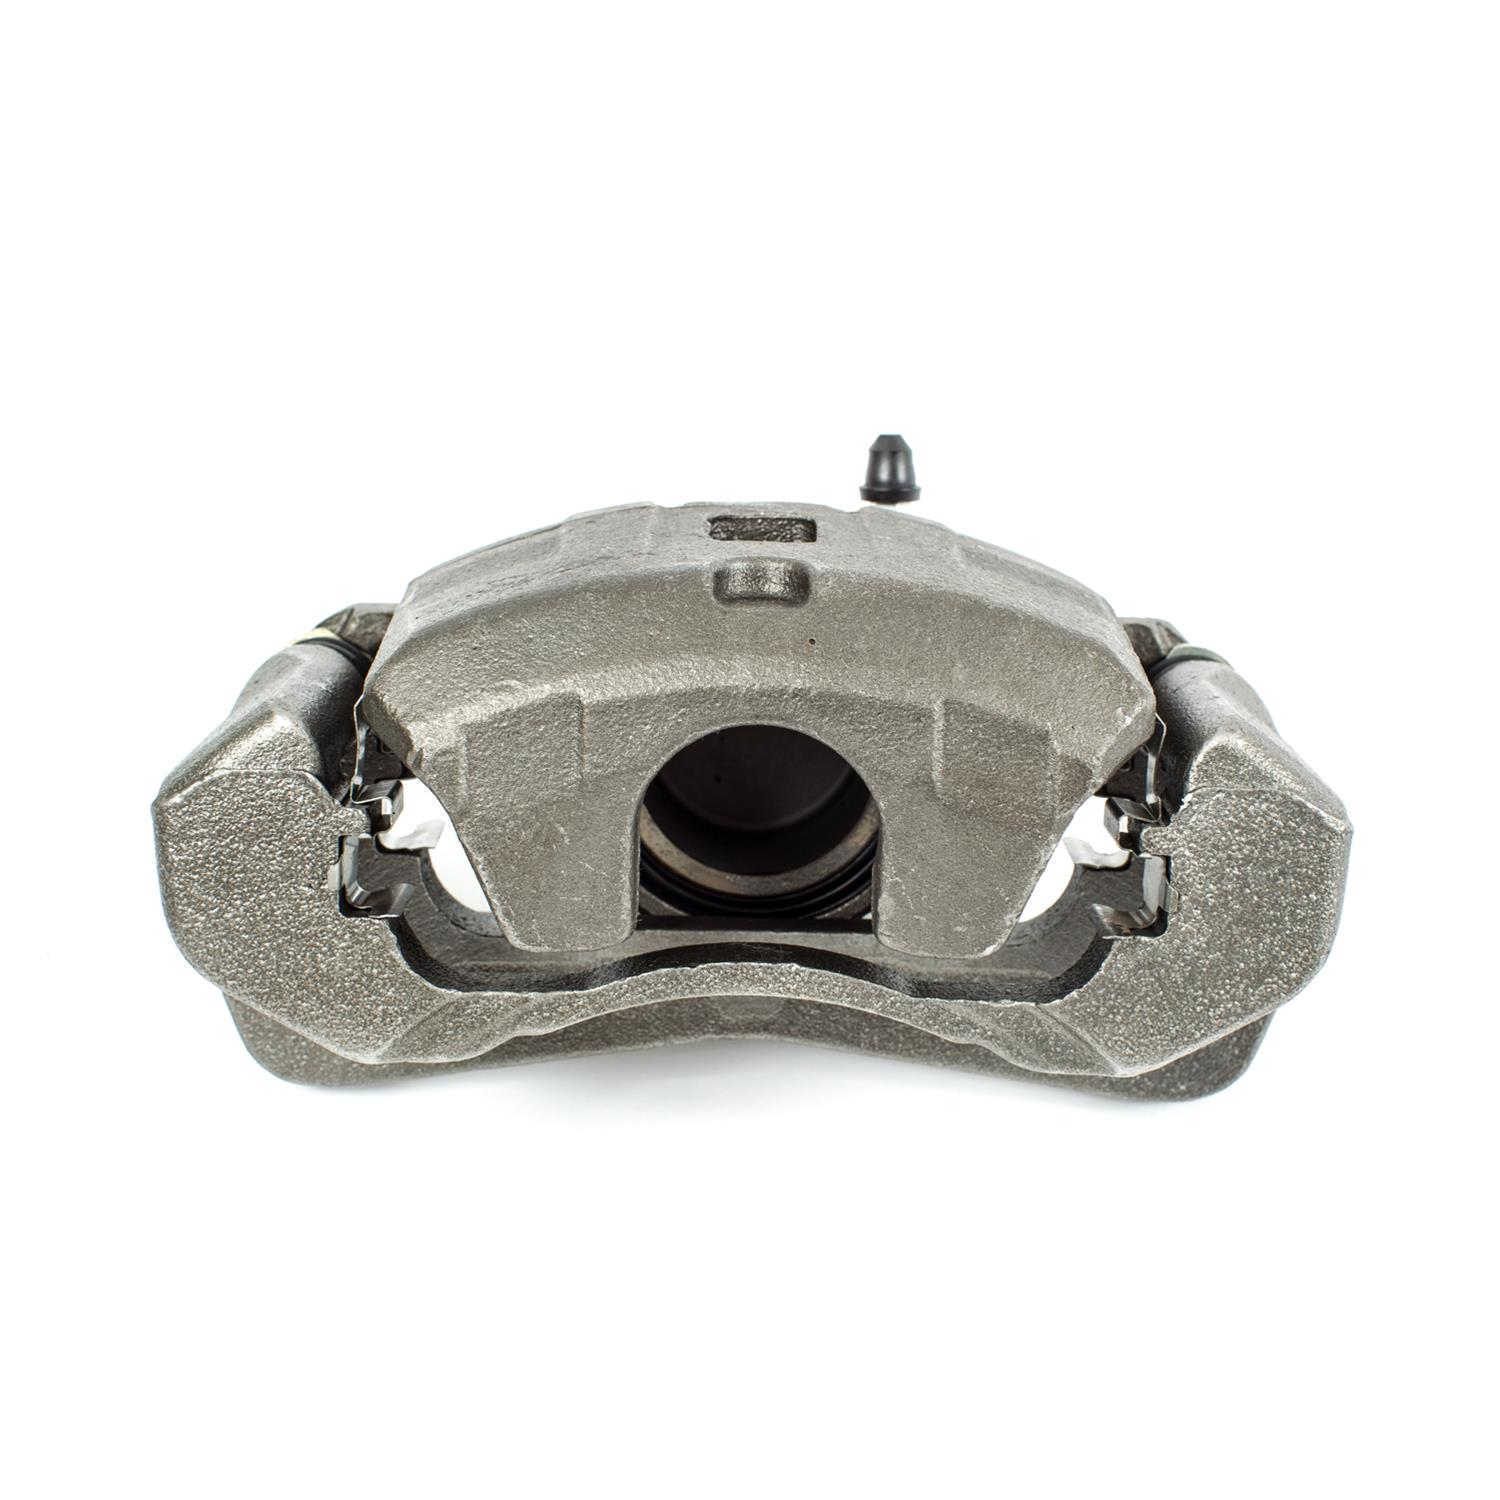 Power Stop L2614 Autospecialty Remanufactured Caliper